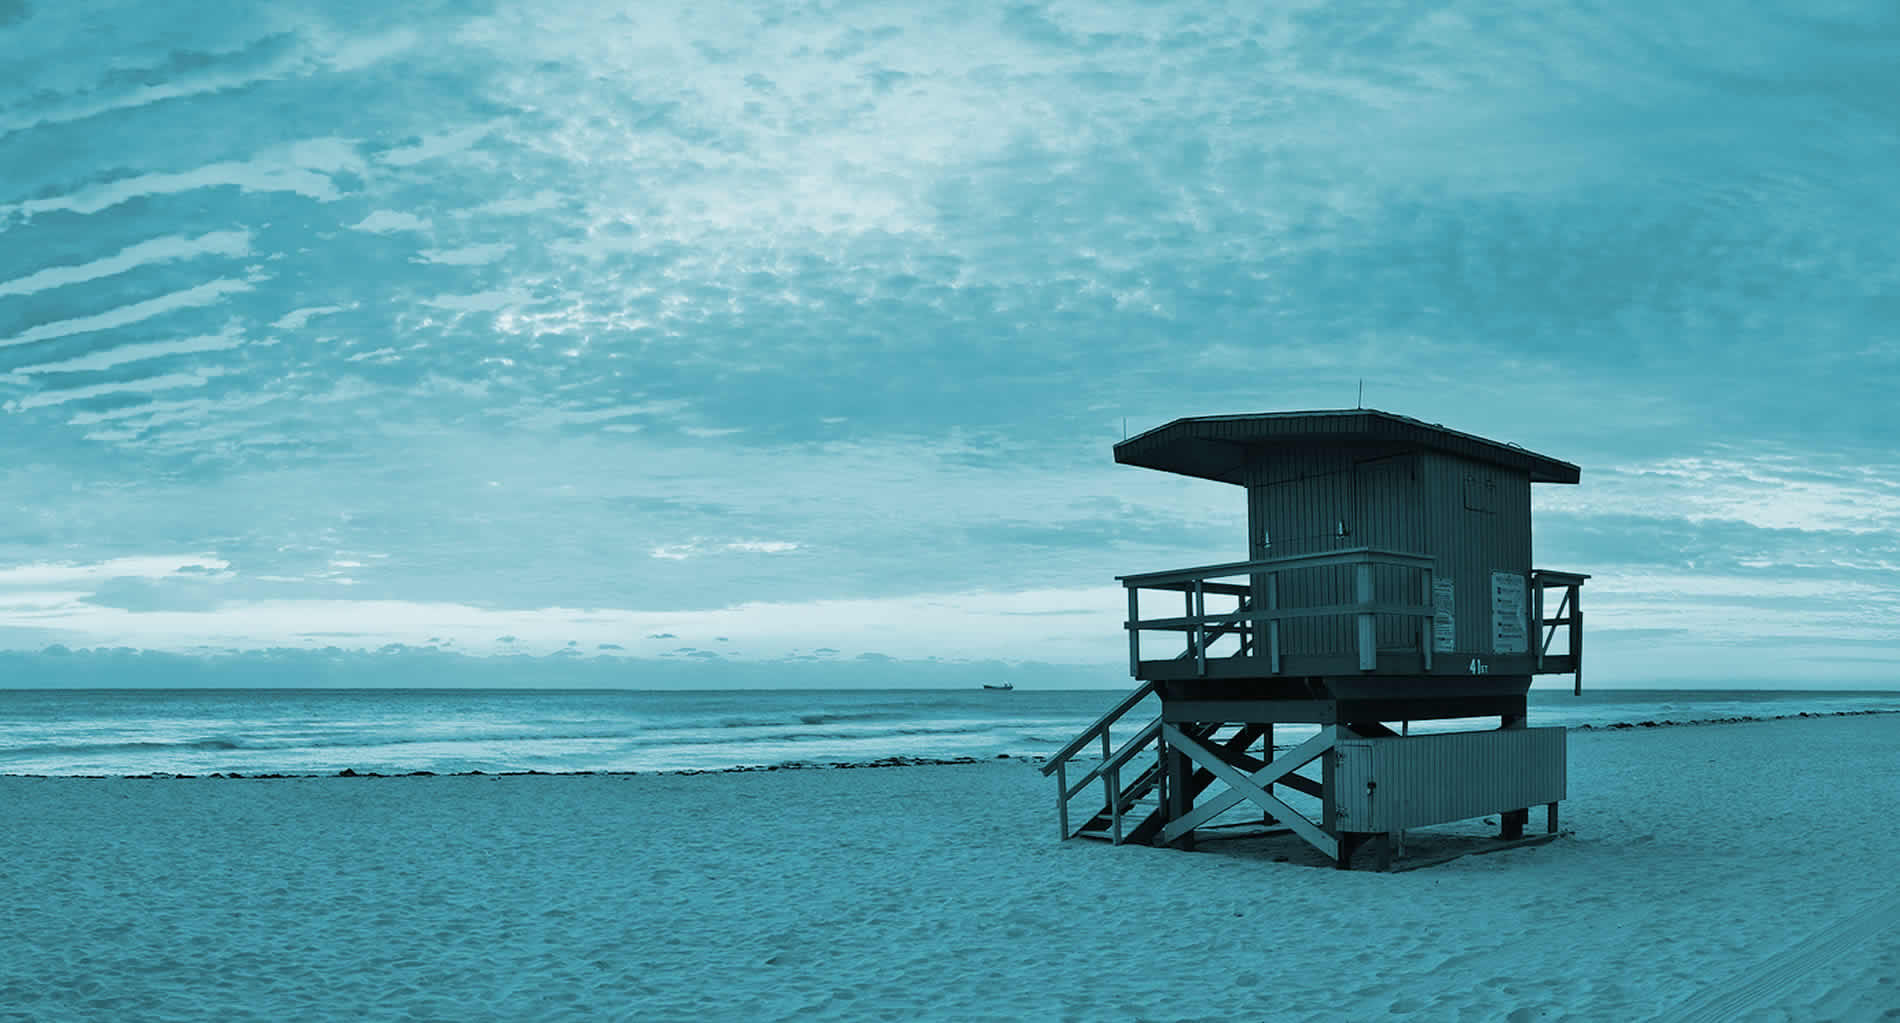 lifeguard stand at Miami Beach